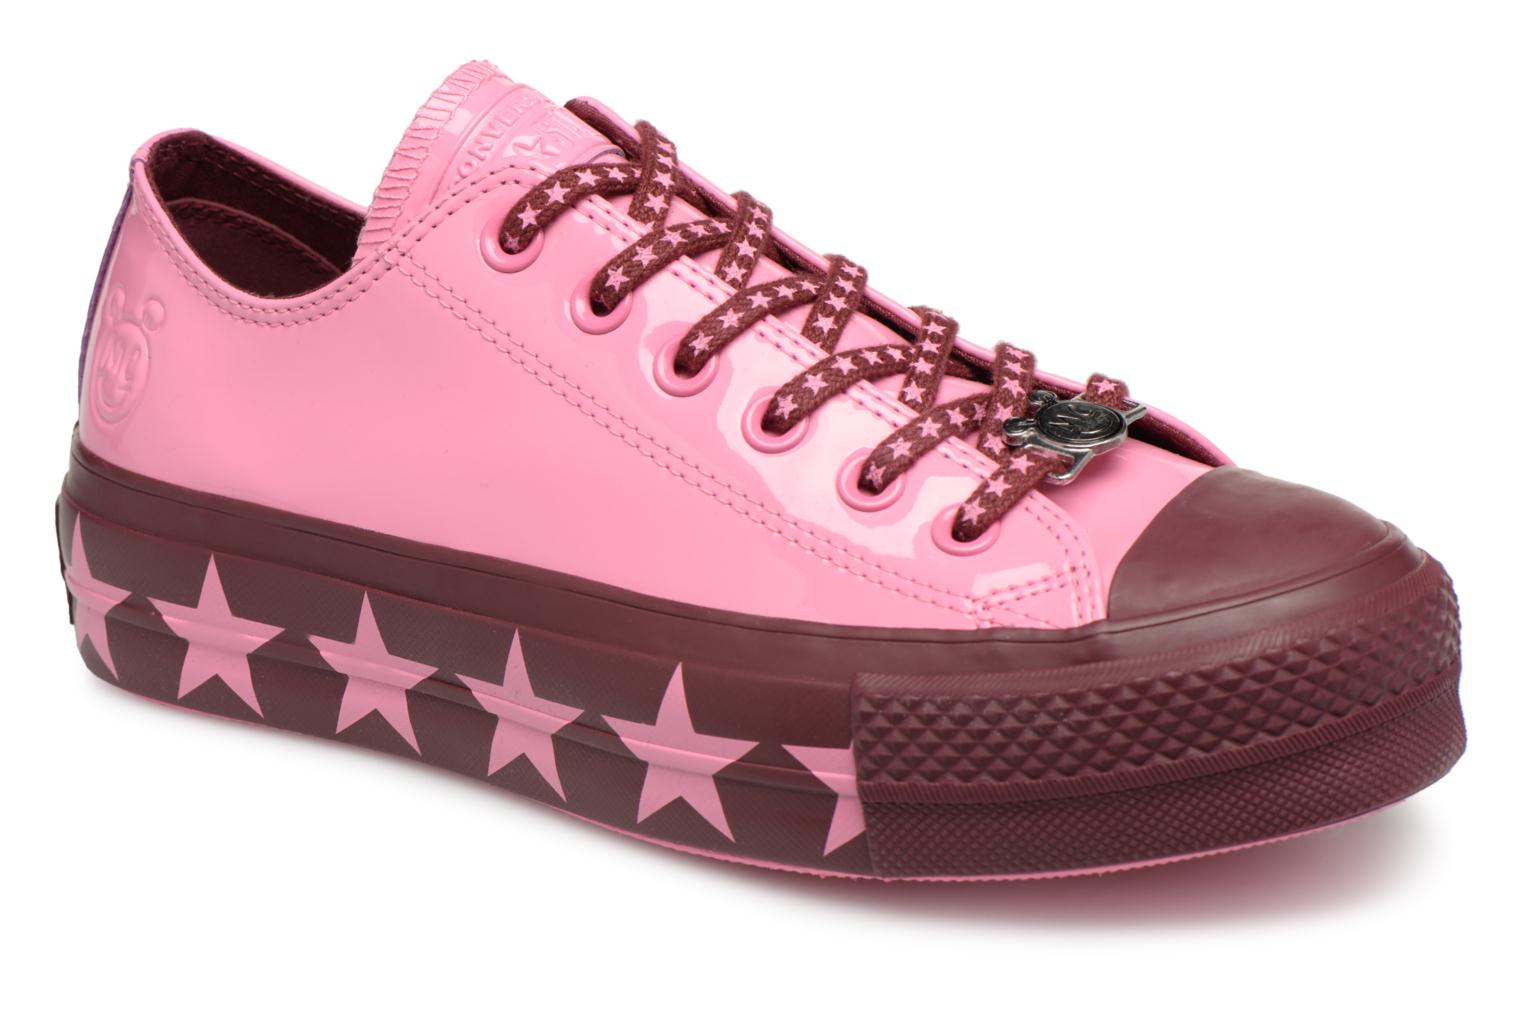 Sneakers Chuck Taylor All Star Lift Ox Miley Cyrus by ConverseConverseRozePaar schoenen - Sneakers88875627869636Synthetisch materiaal